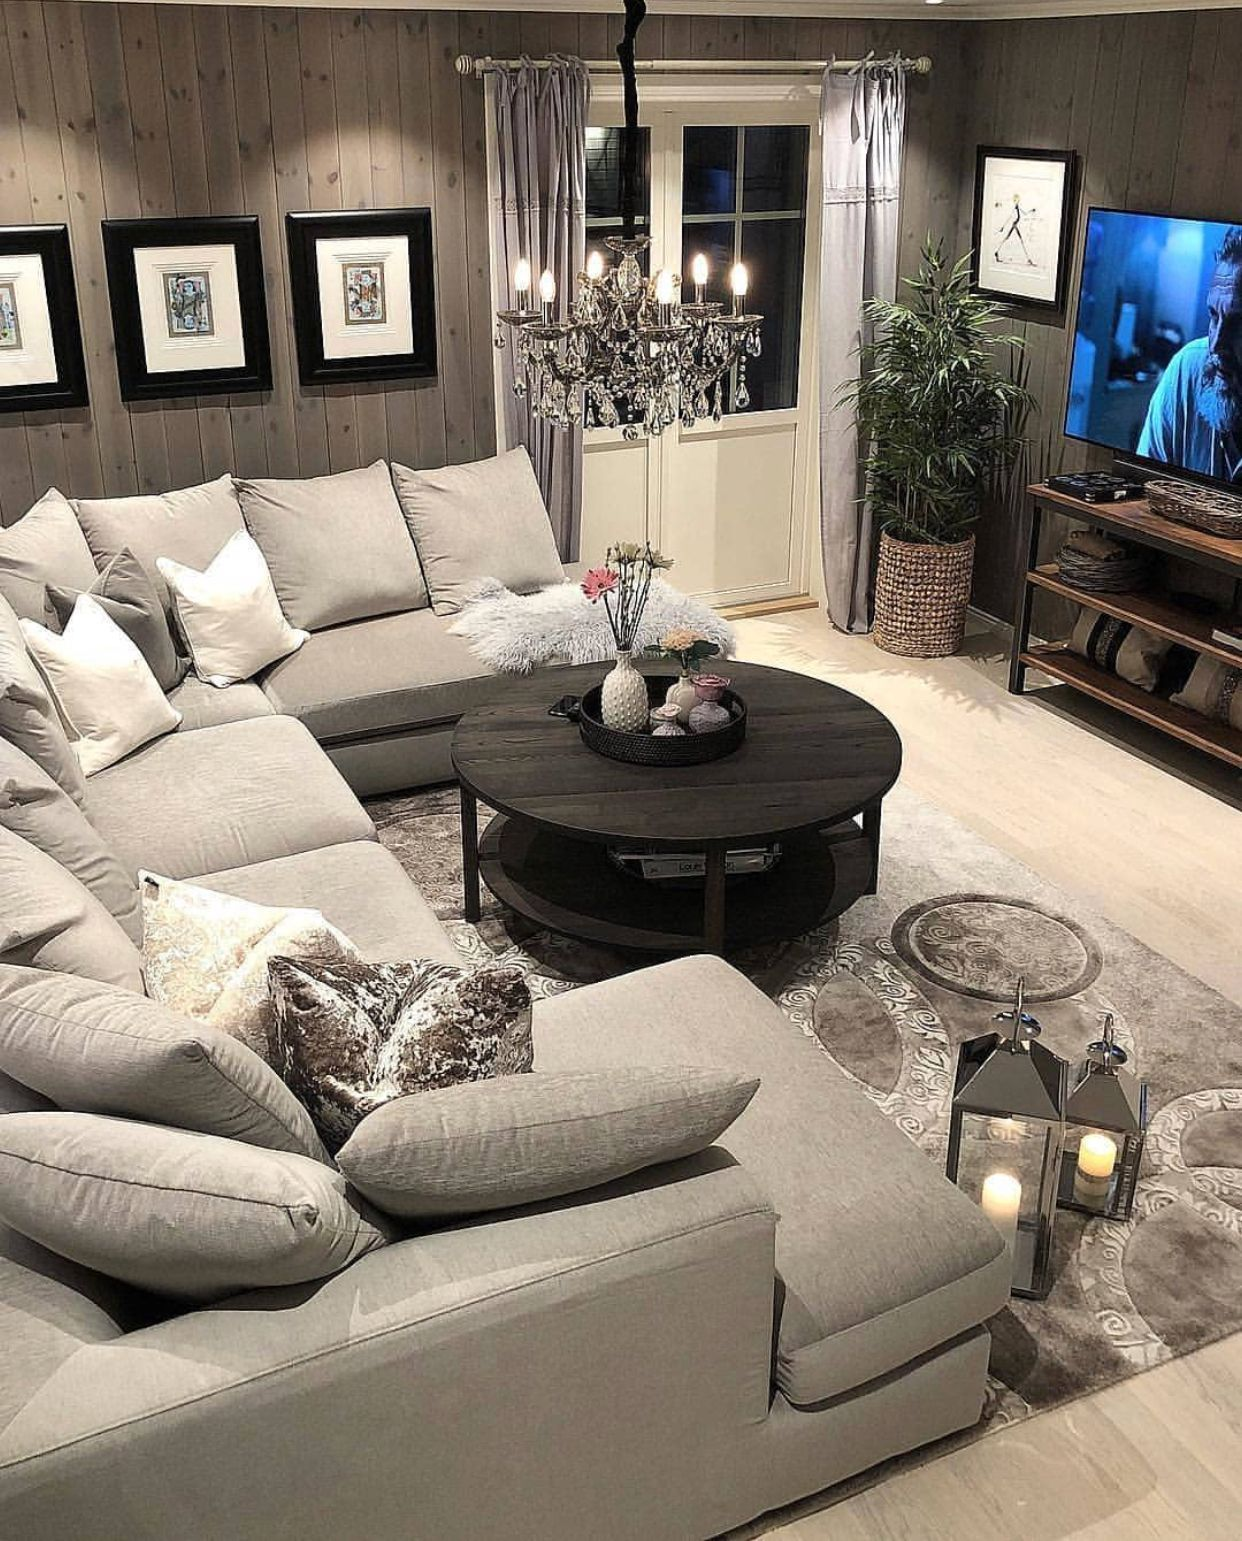 14 Small Apartment Living Rooms With The Best Space Saving Ideas Futurian Cozy Living Room Design Living Room Decor Cozy Small Apartment Living Room